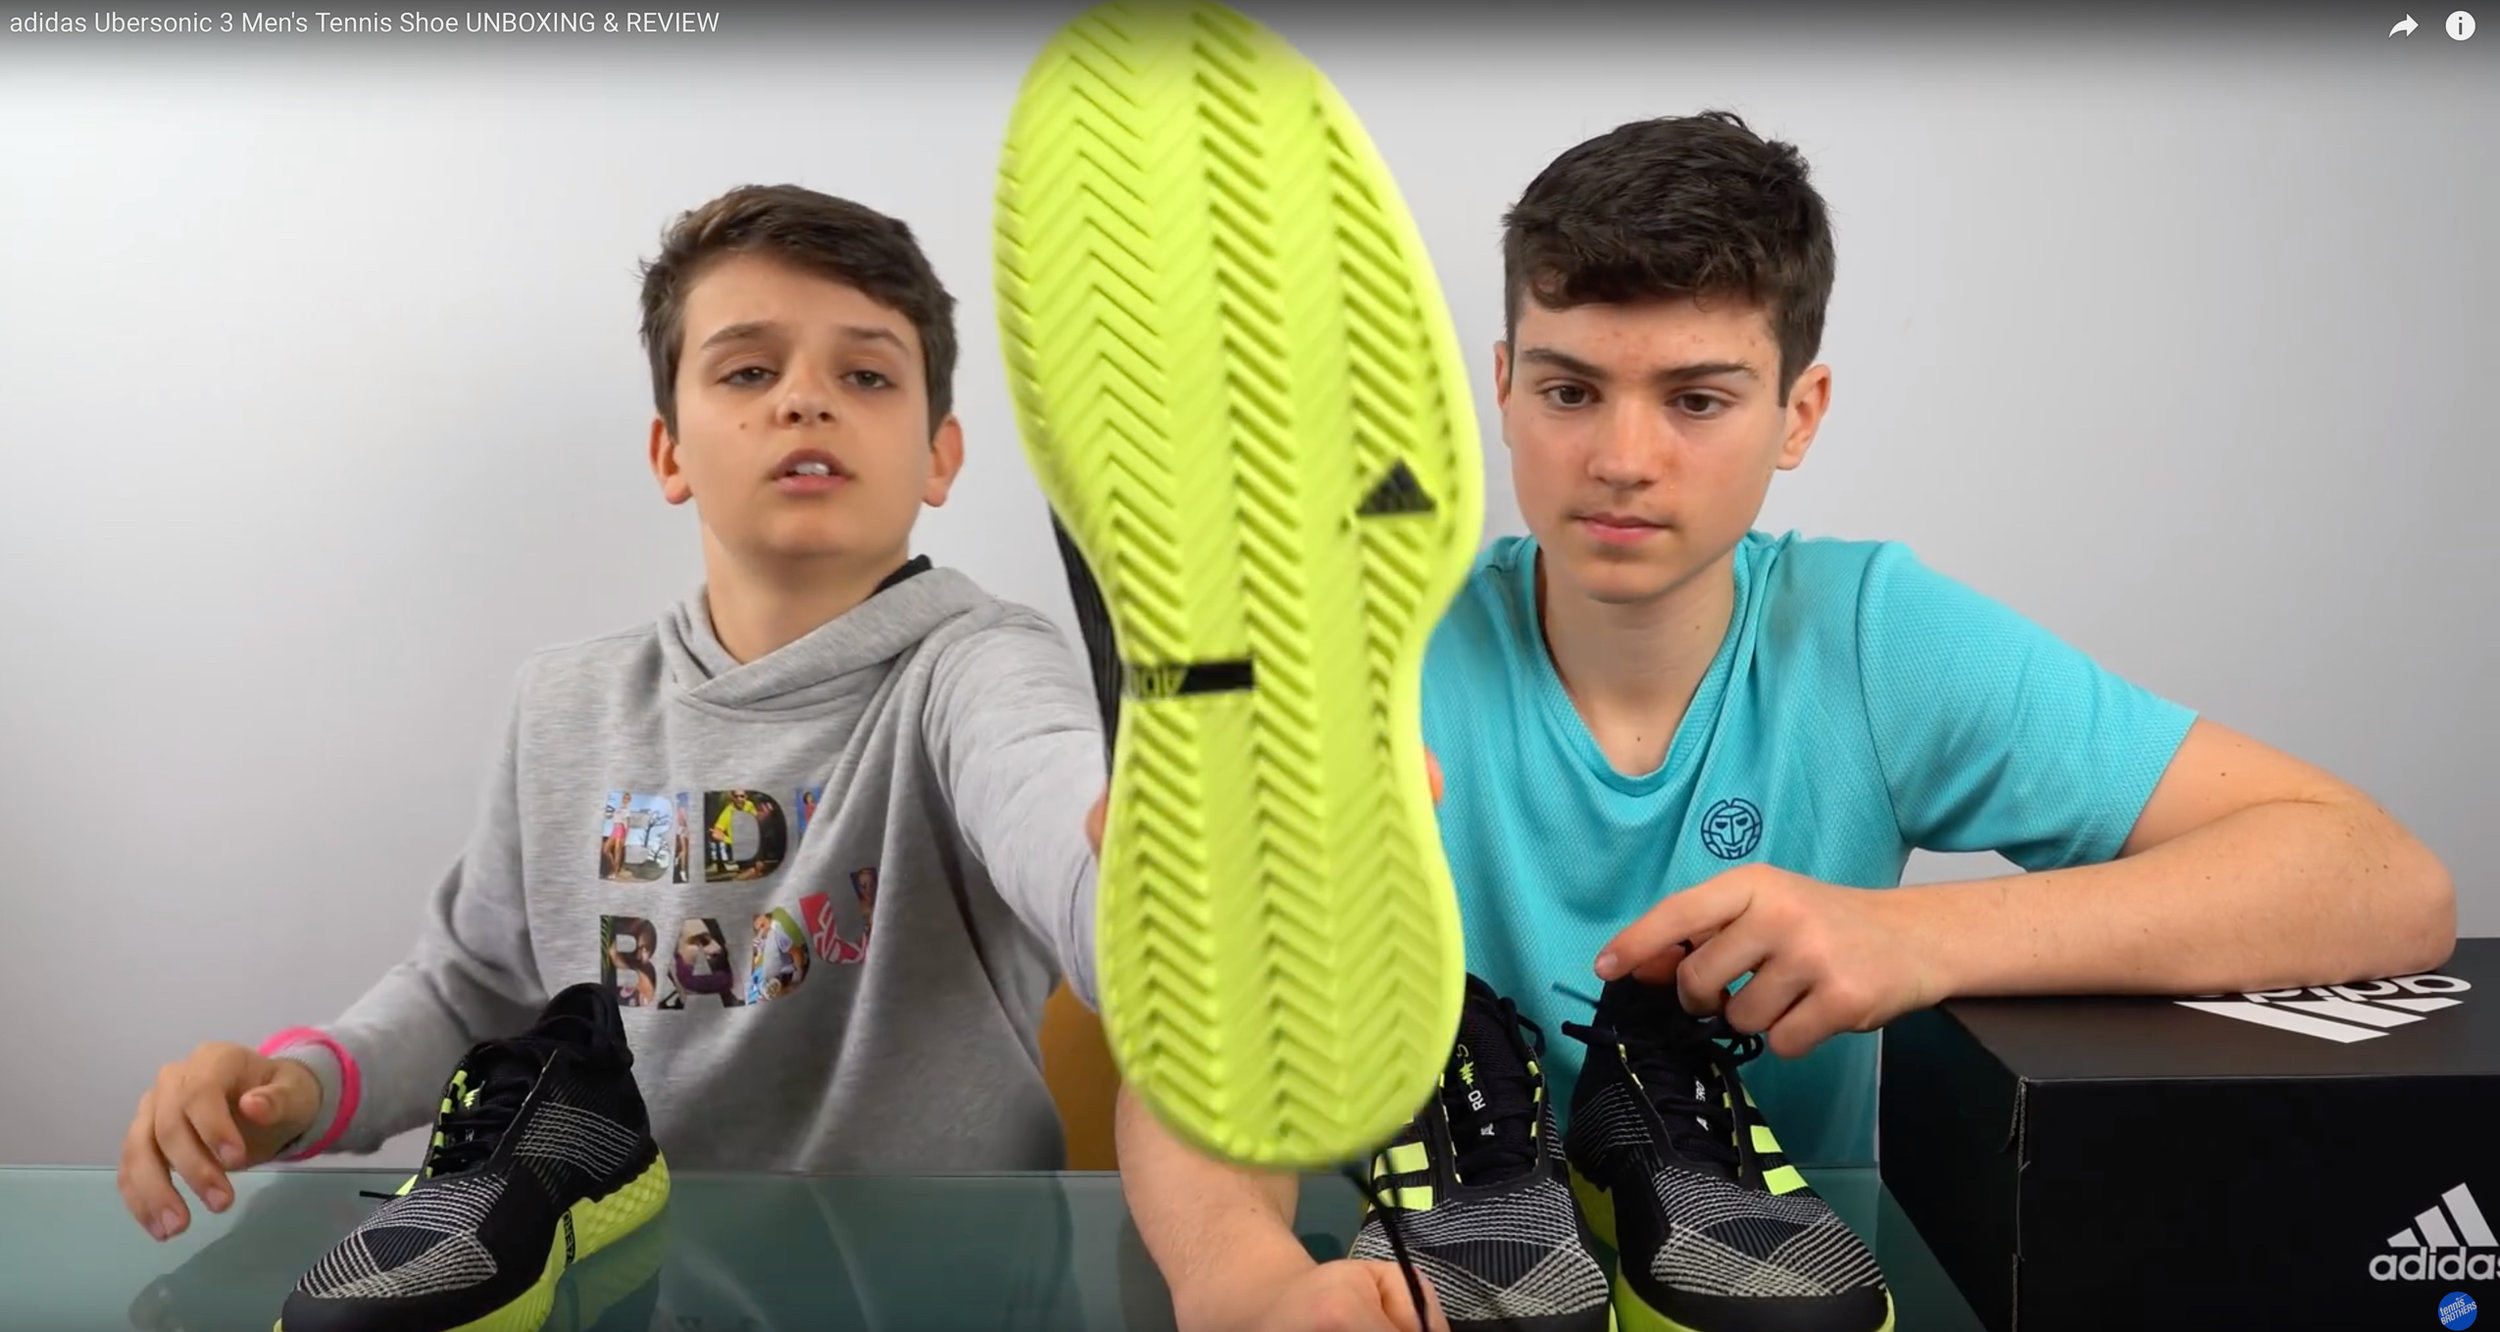 new adidas shoes - Adidas Ubersonic 3 - best features